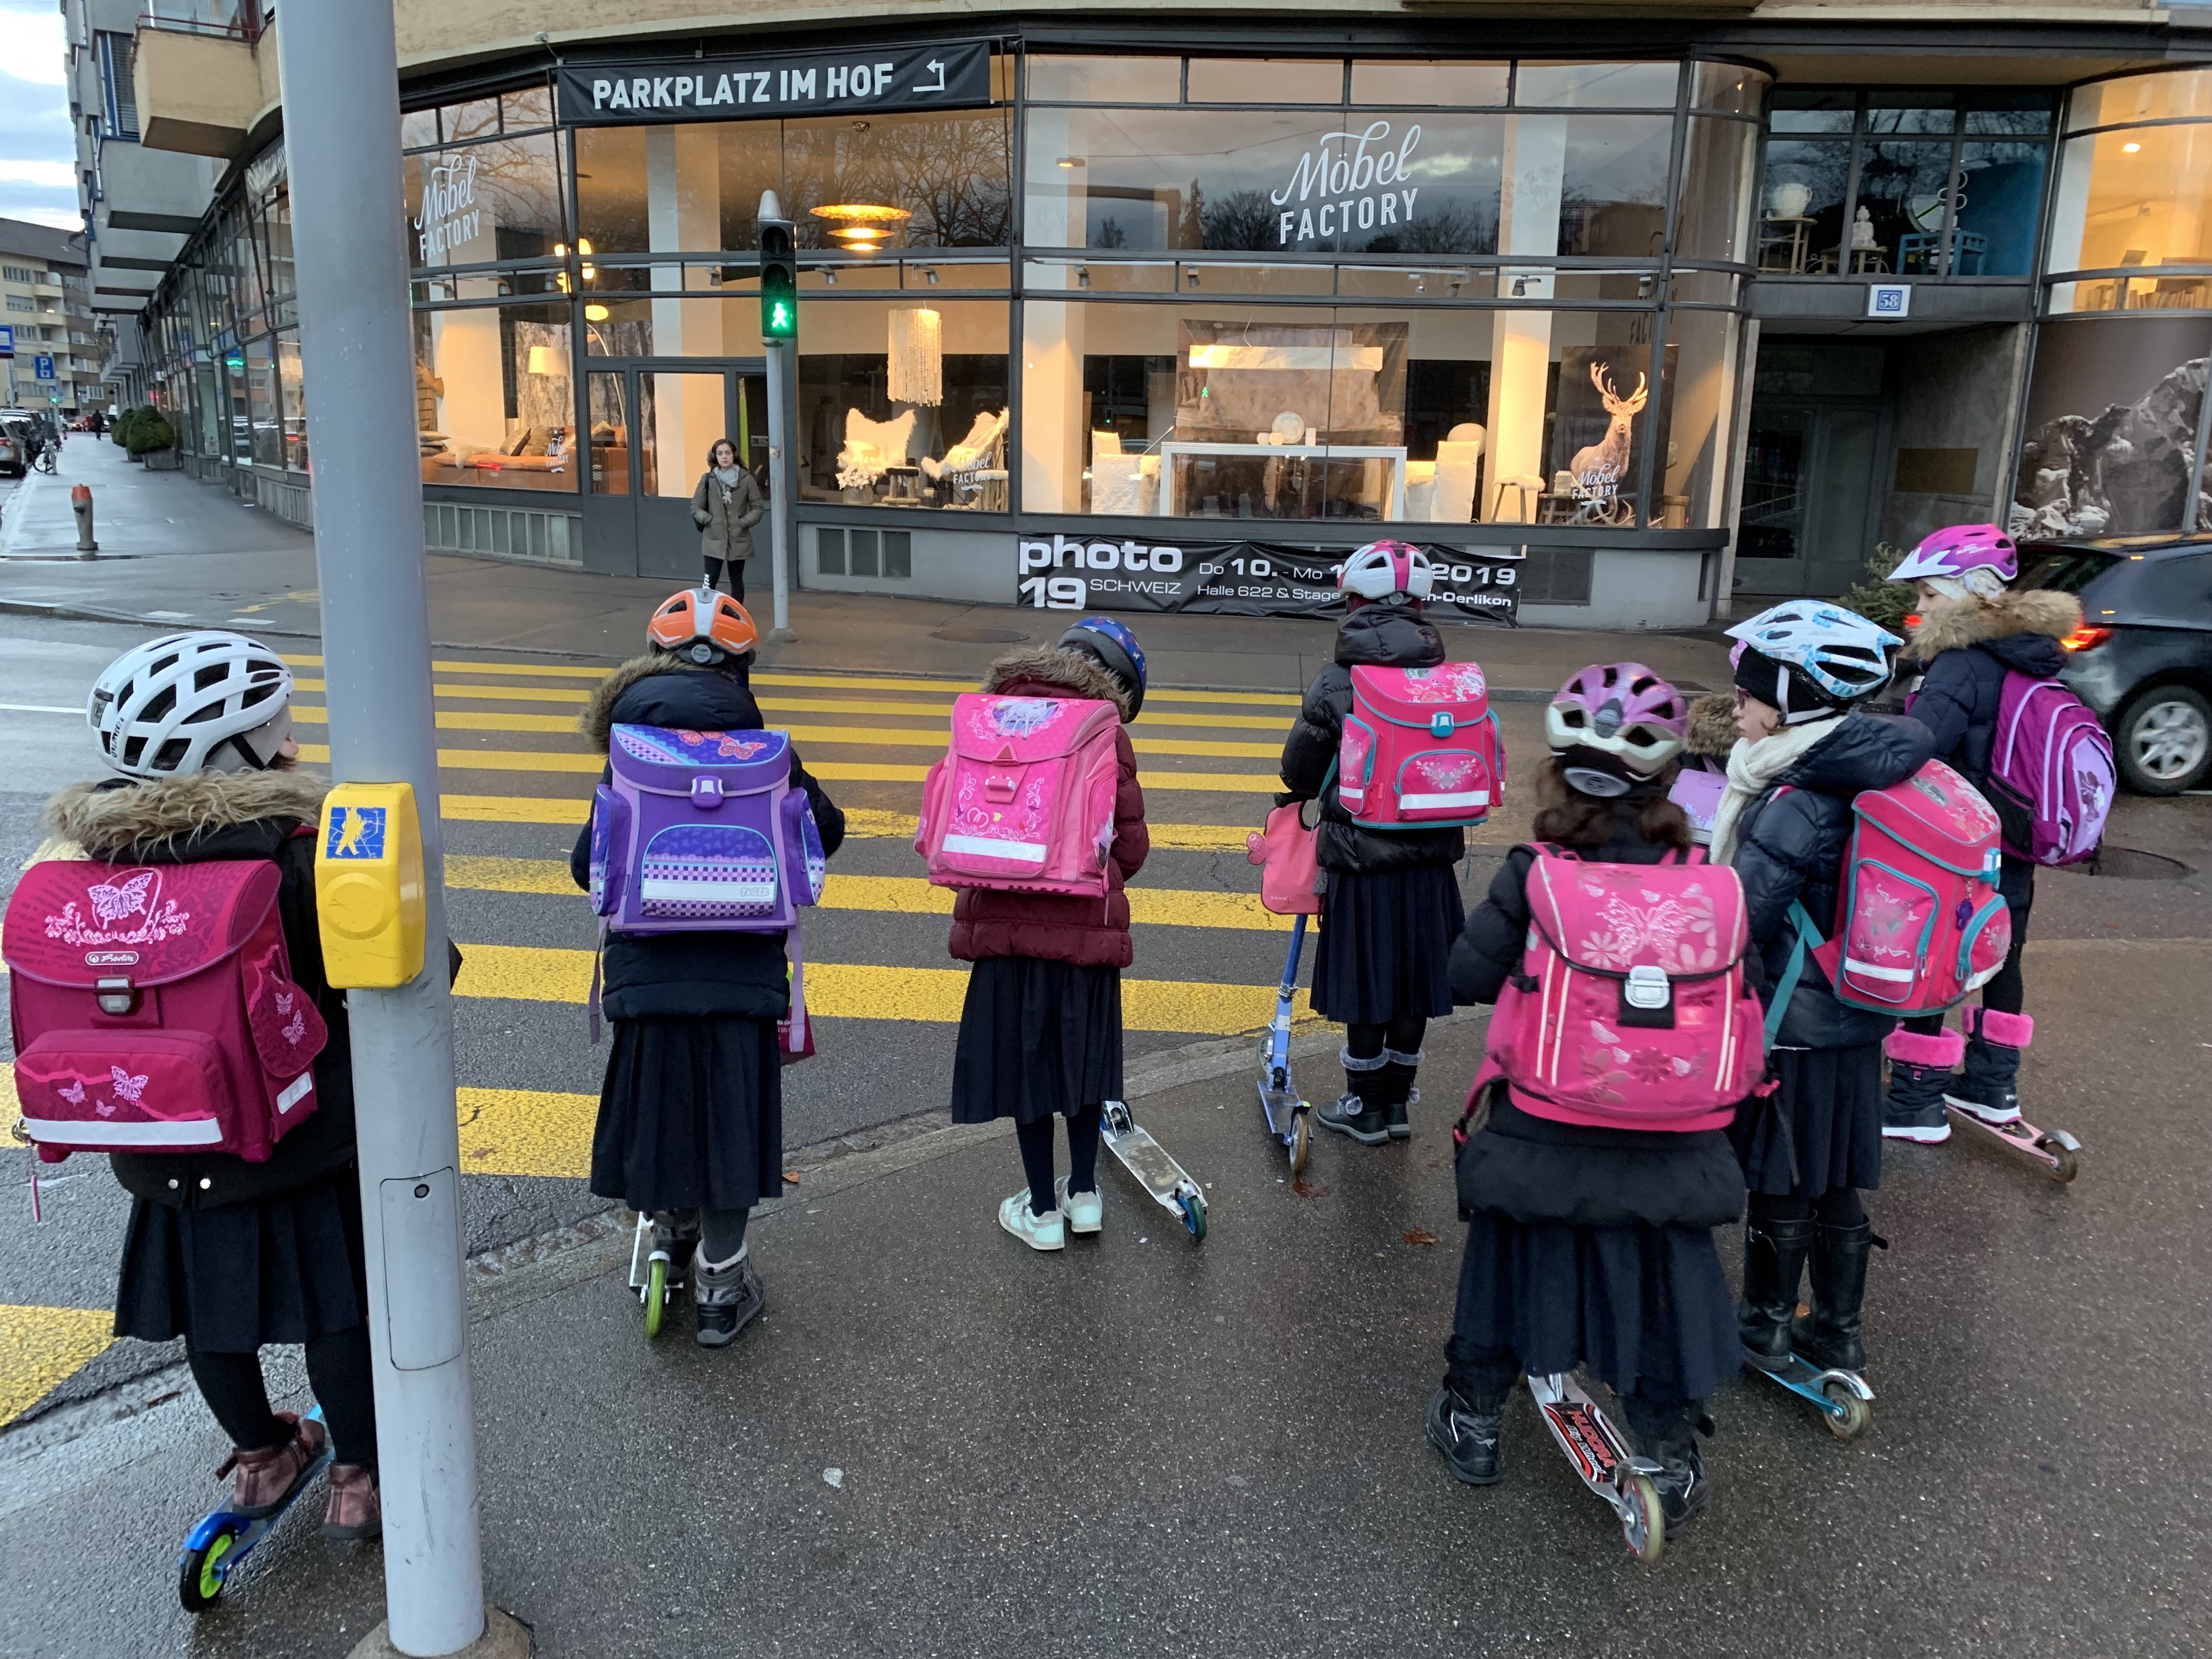 6 young girls wait to cross the street on scooters with backpacks on their way to school